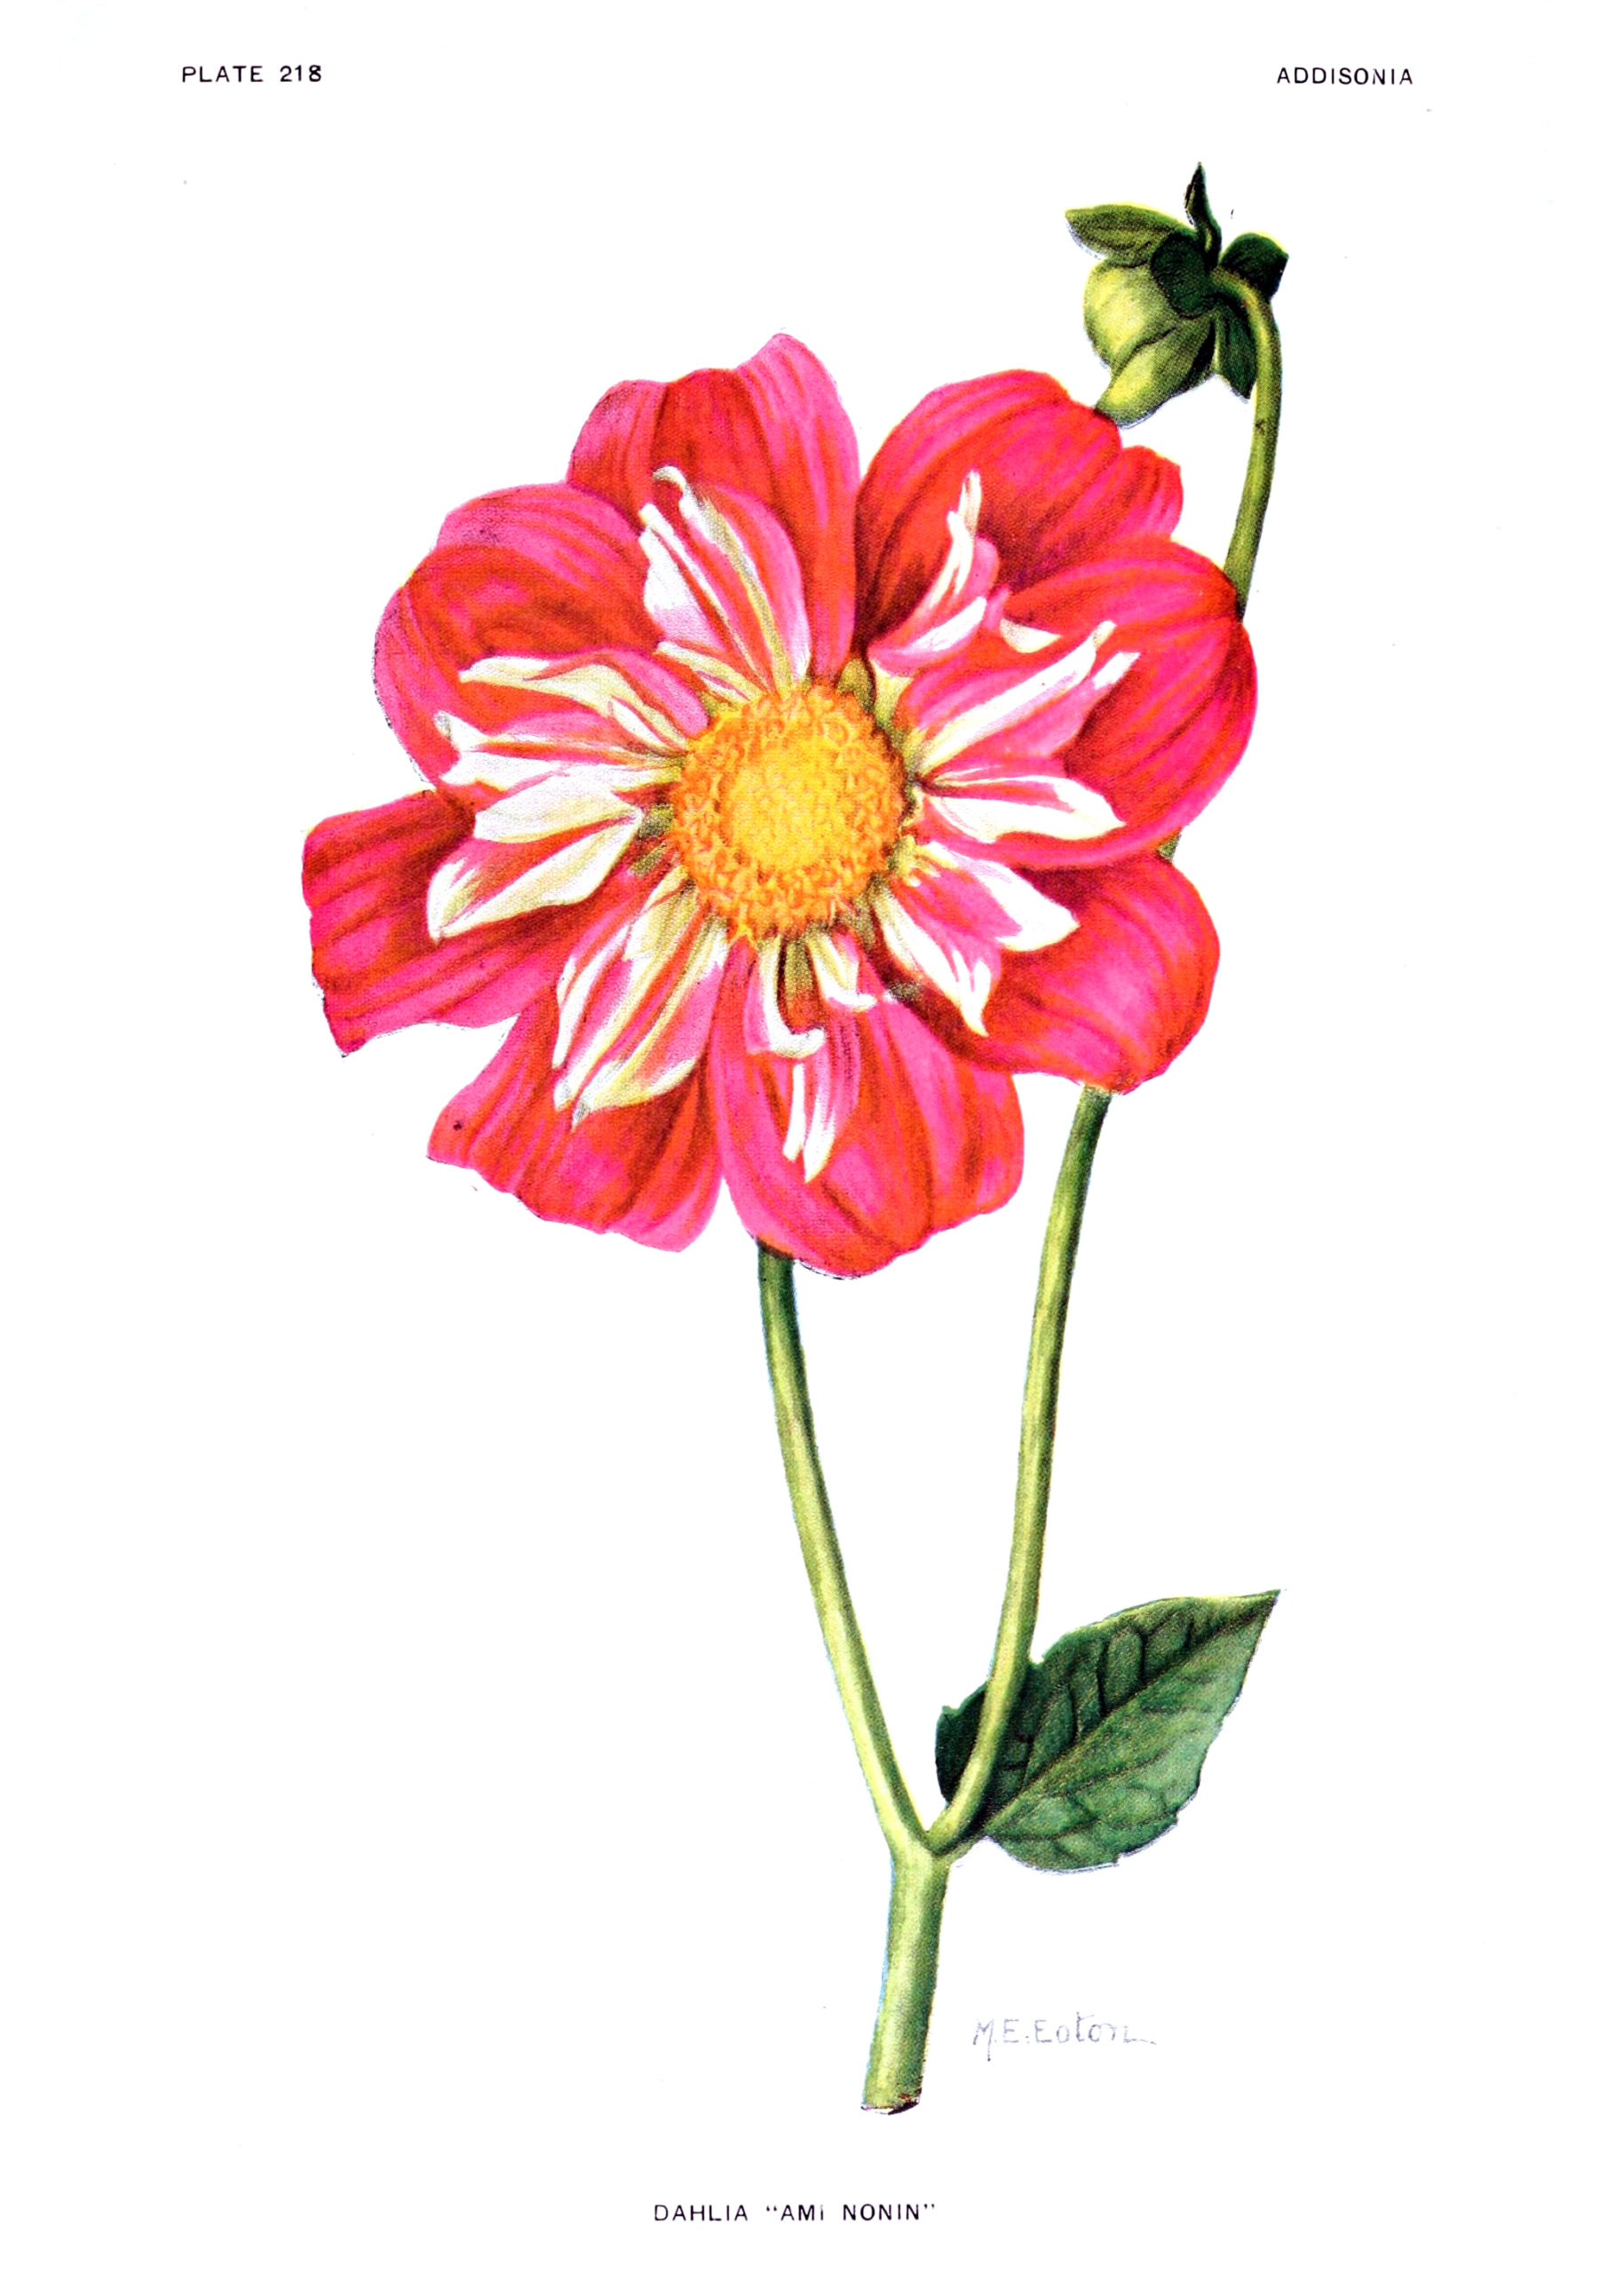 Dazzling Dahlias - 46 in a series -  Dahlia 'Ami Nonin' from Addisonia : colored illustrations and popular descriptions of plants (1916)